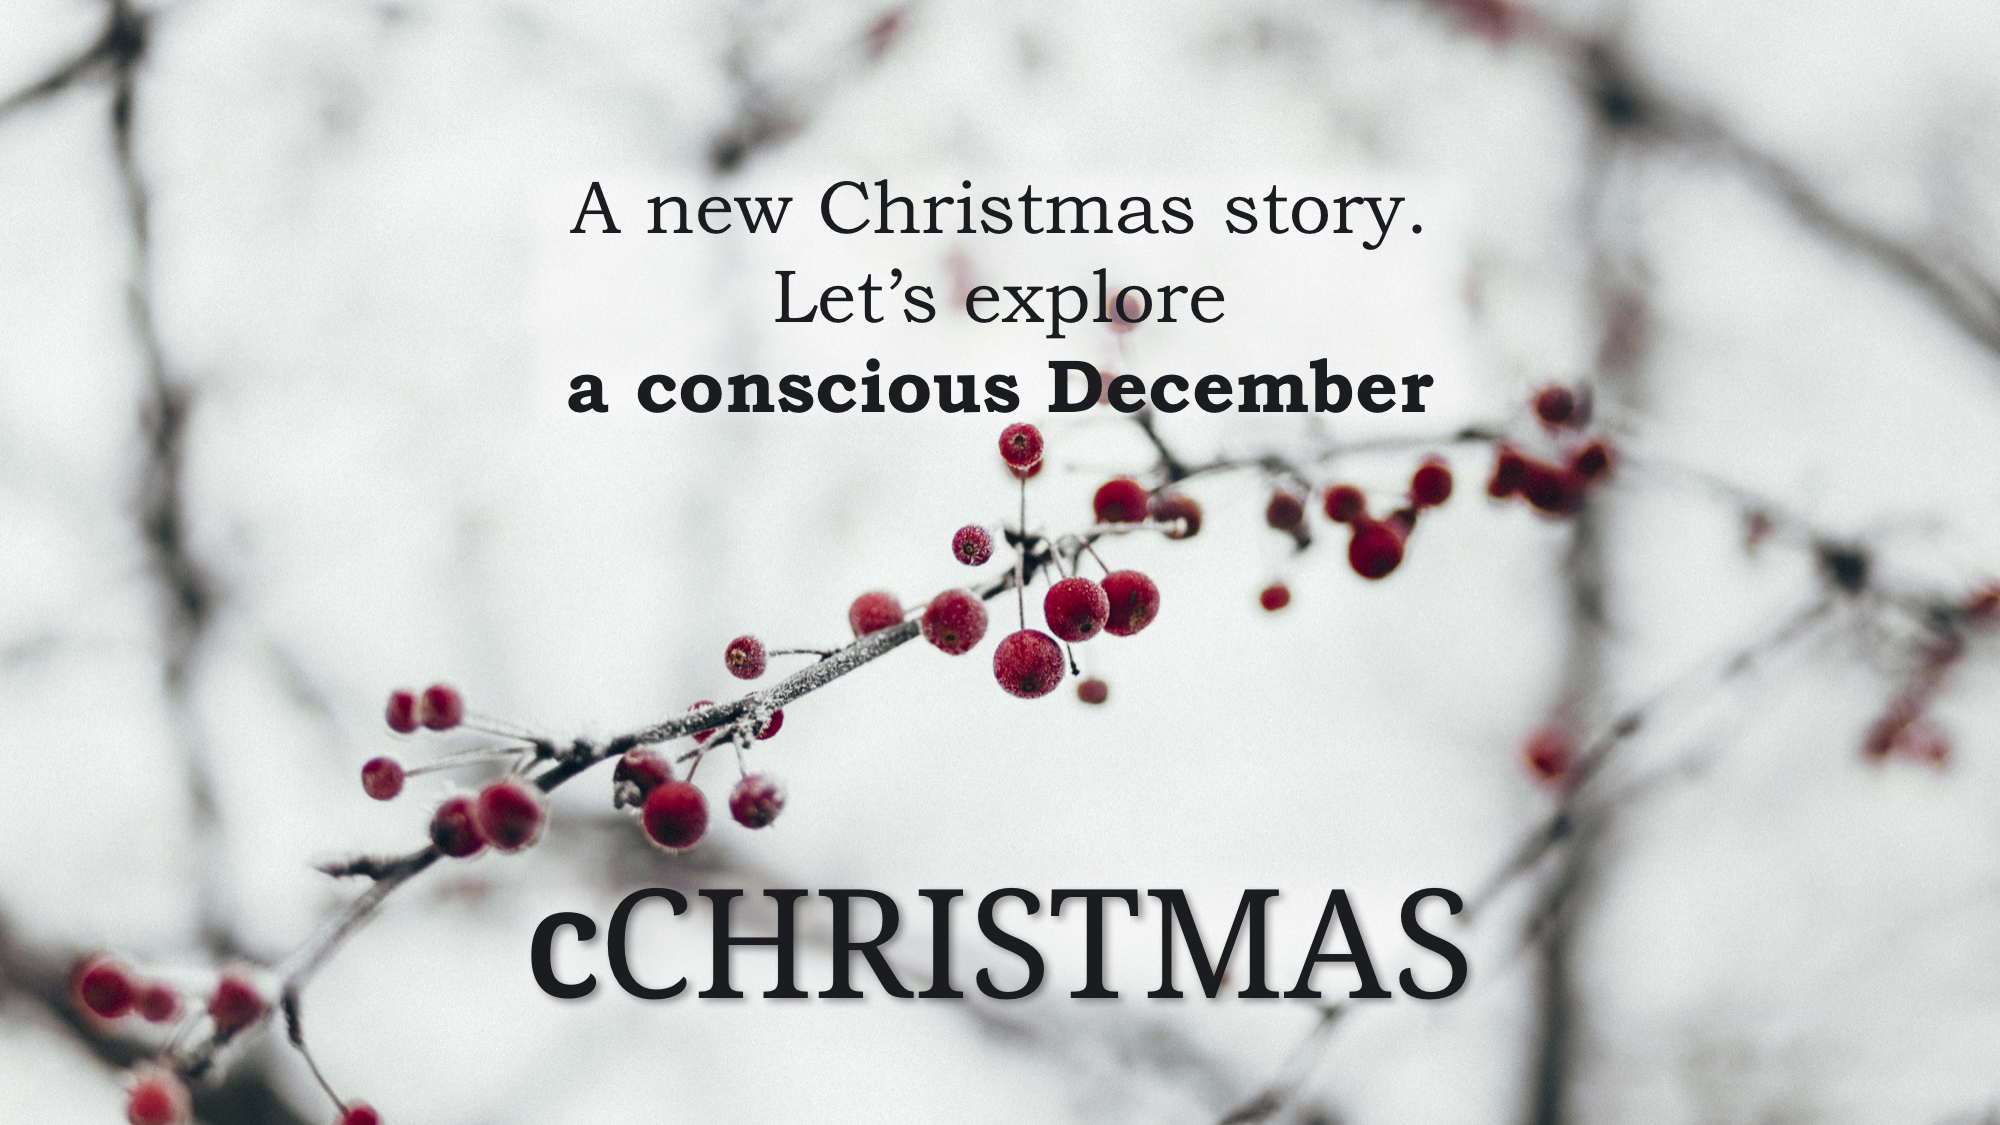 cCHRISTMAS   Follow this public cCHALLENGE round where people from around the world explore a more conscious December.